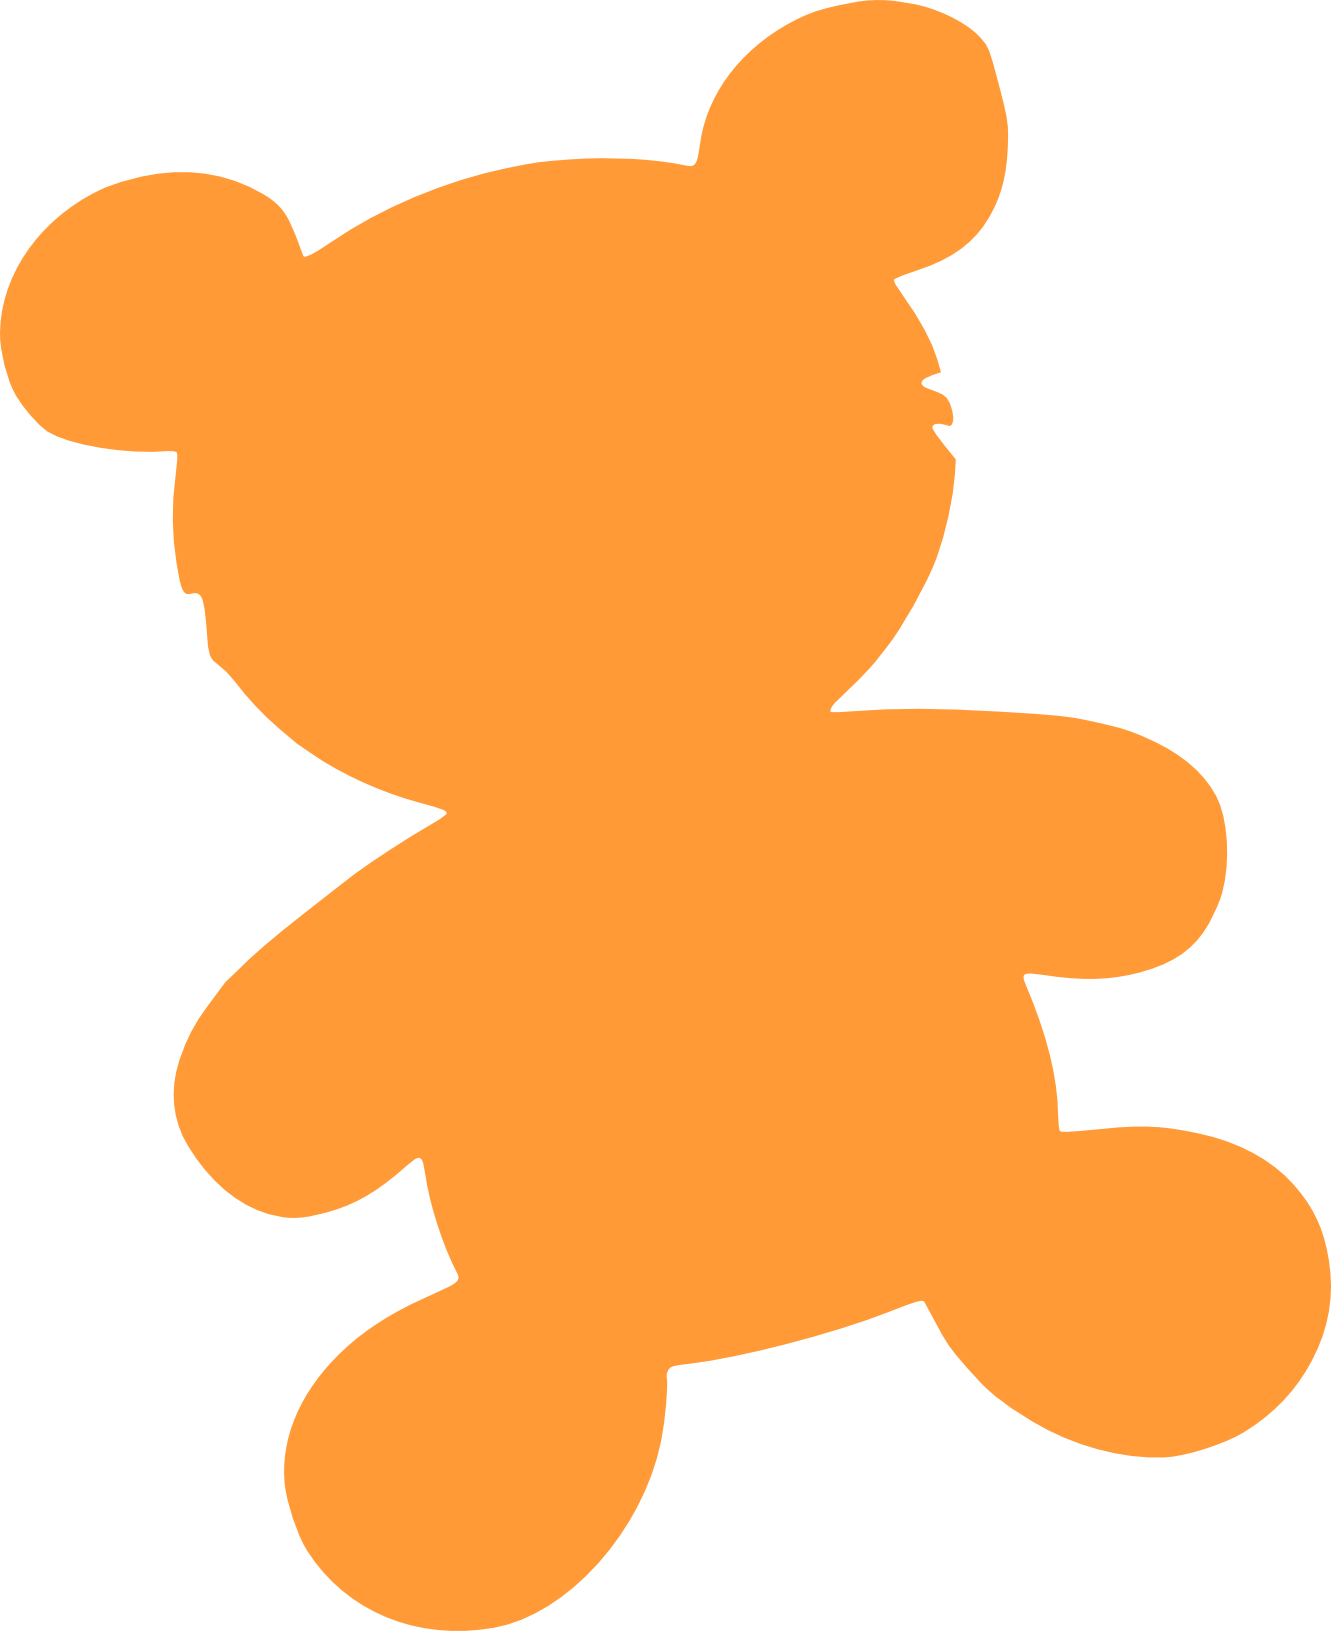 Teddy clipart grizzly bear Panda Bear Clipart Outline grizzly%20bear%20standing%20clipart